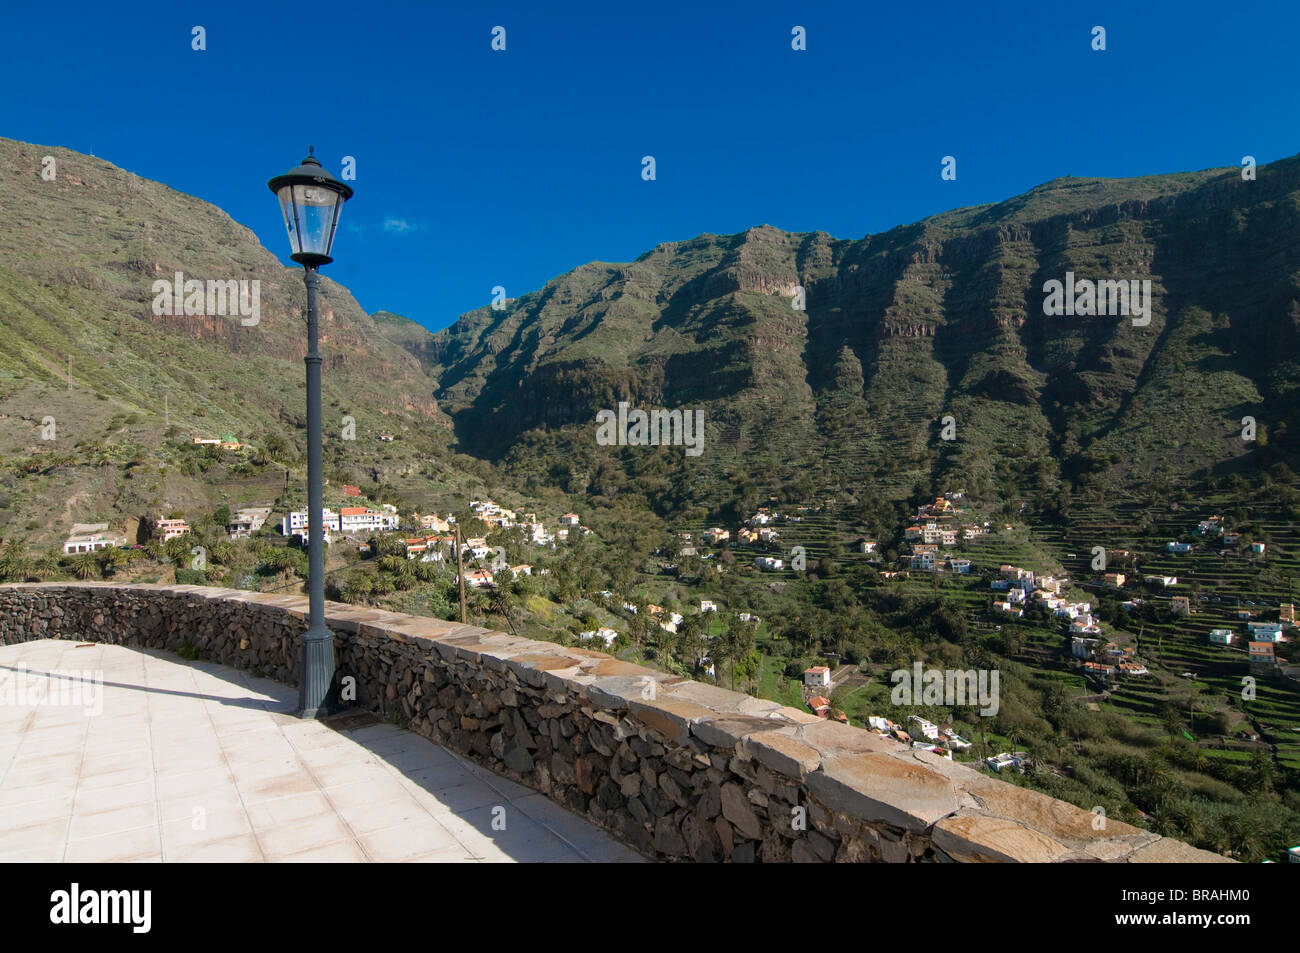 View into Valle Gran Rey, La Gomera, Canary Islands, Spain, Europe - Stock Image